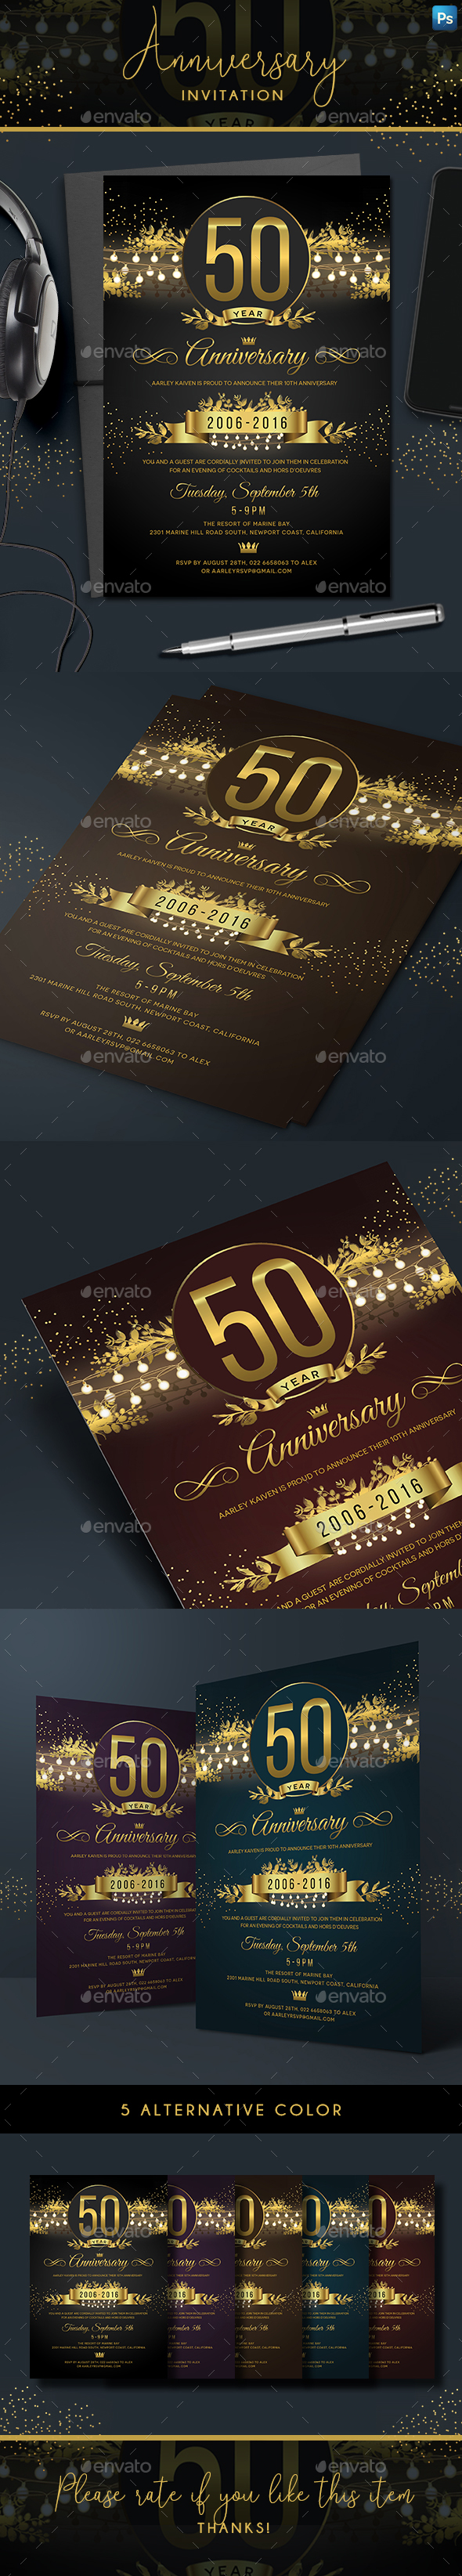 String Lights Anniversary Invitation - Anniversary Greeting Cards